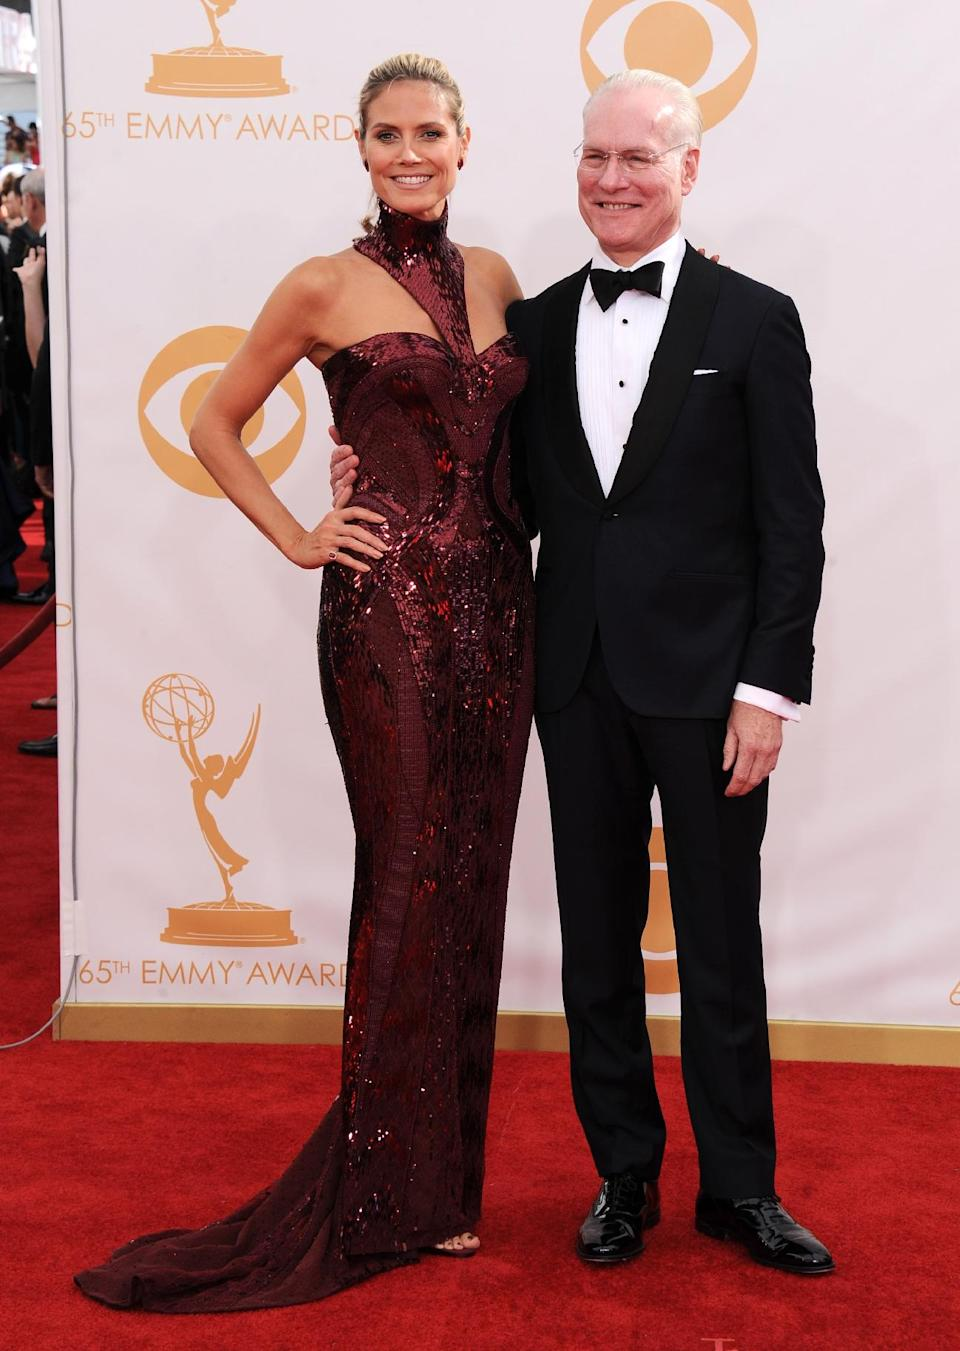 Heidi Klum, wearing Versace, left, and Tim Gunn arrive at the 65th Primetime Emmy Awards at Nokia Theatre on Sunday Sept. 22, 2013, in Los Angeles. (Photo by Jordan Strauss/Invision/AP)